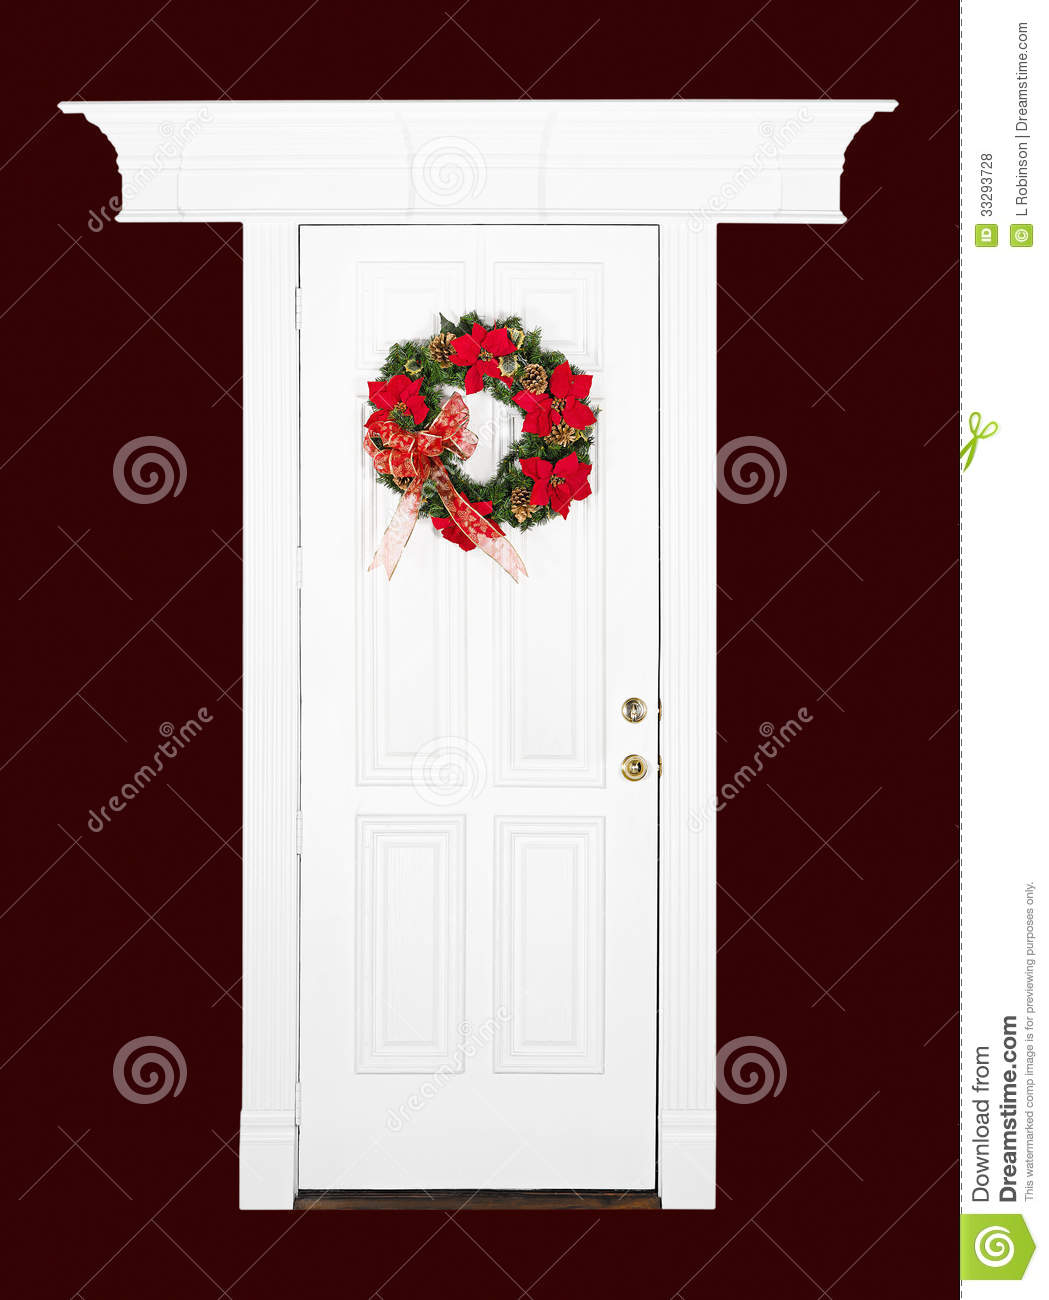 Le Meilleur Christmas Flower Wreath On White Door Stock Photo Image Ce Mois Ci